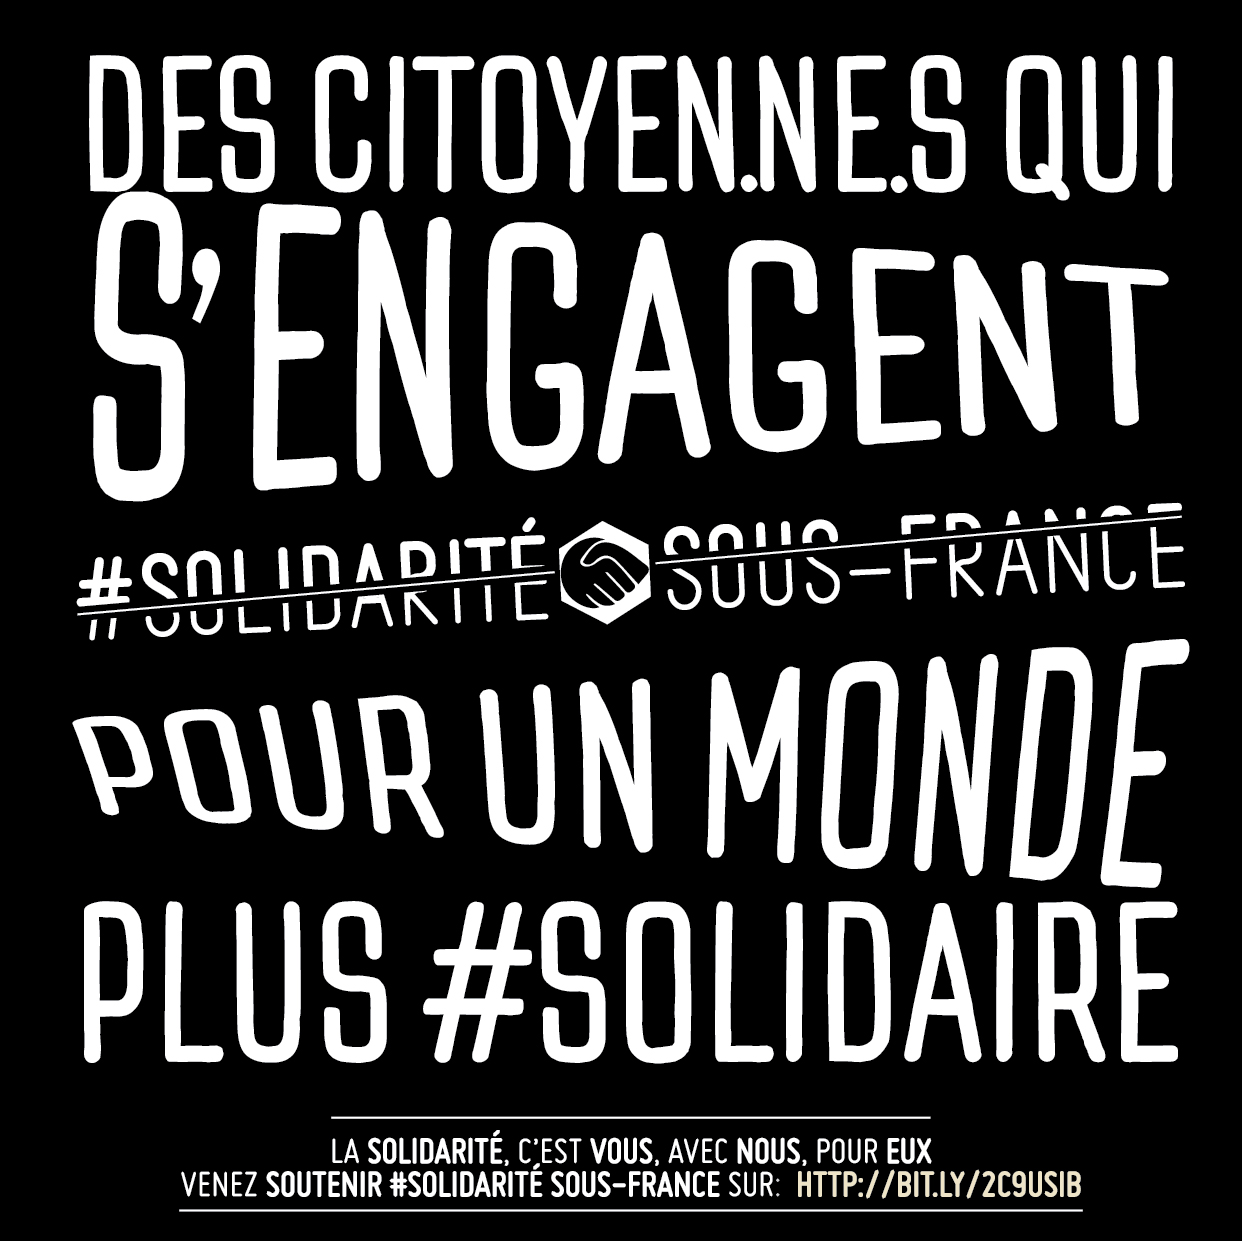 Association - Solidarité Sous-France